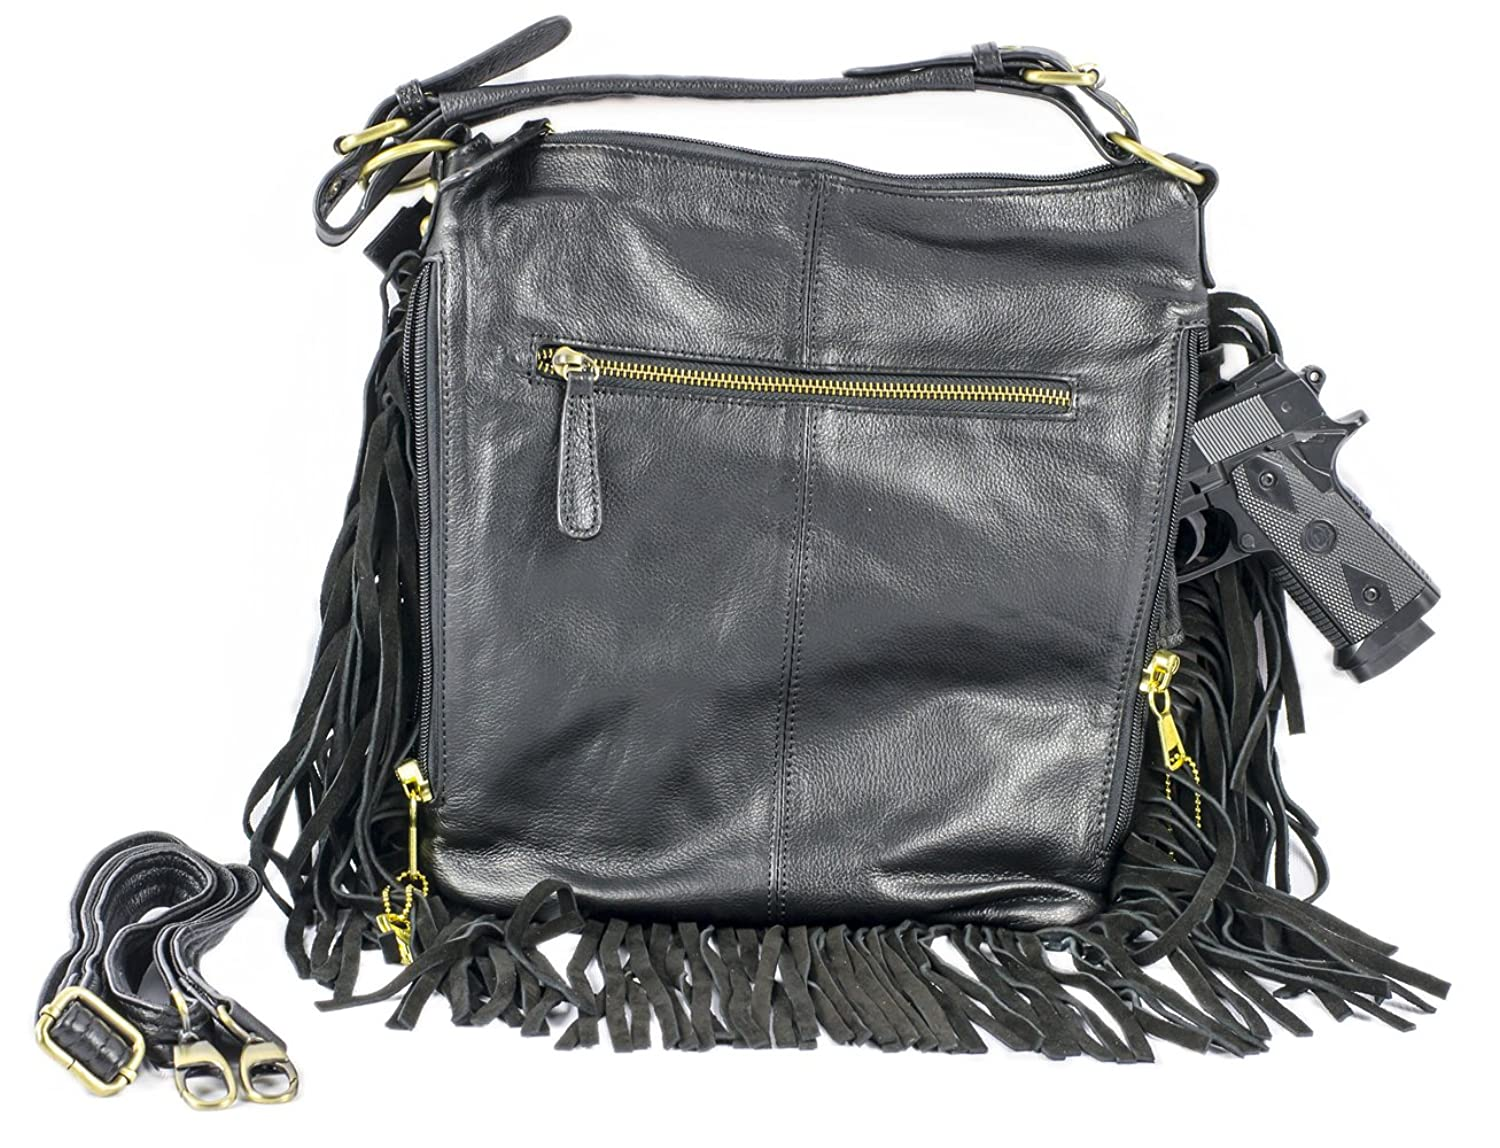 d16b1aed4024 85%OFF Vivoi Cowhide Leather Locking Concealed Carry Purse Tassels Shoulder  or Cross-Body